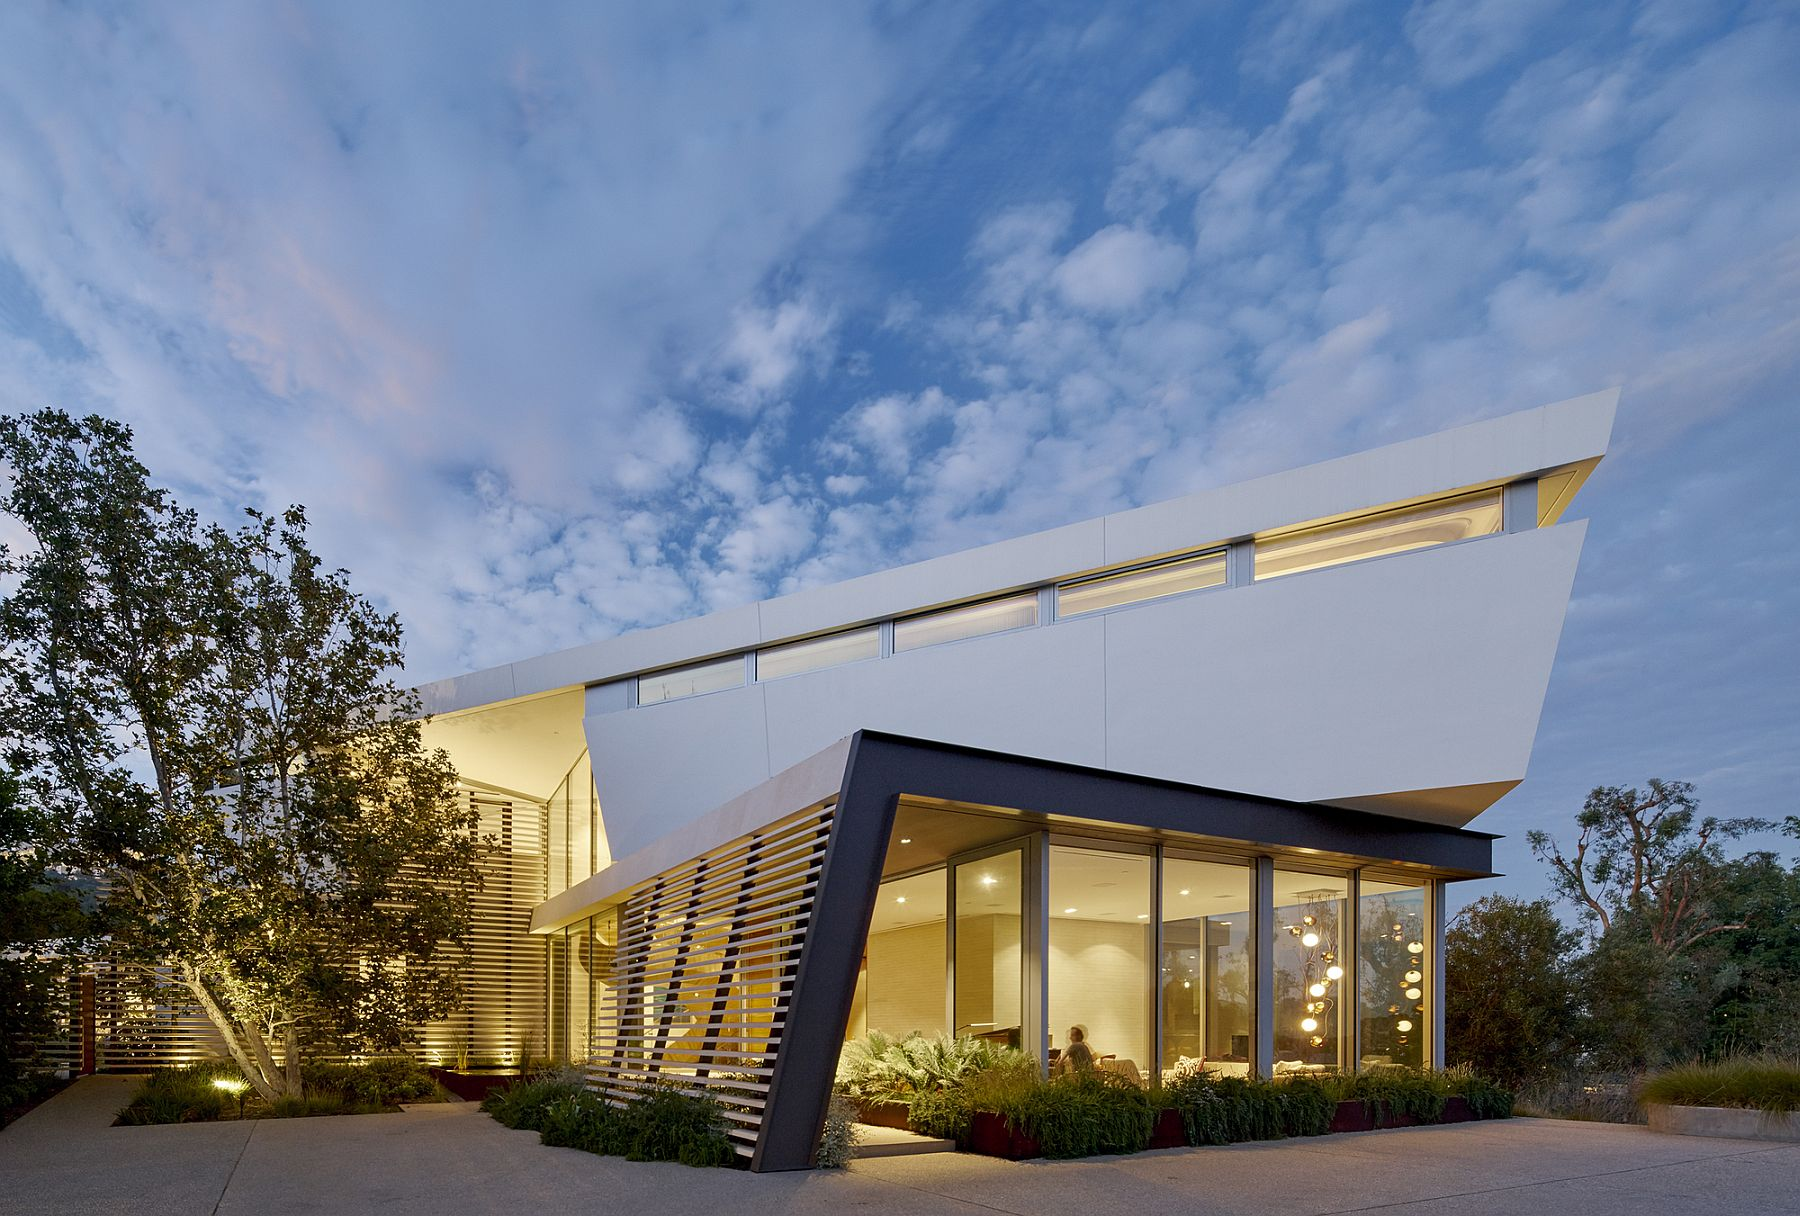 Tree Top Residence by Belzberg Architects in Los Angeles